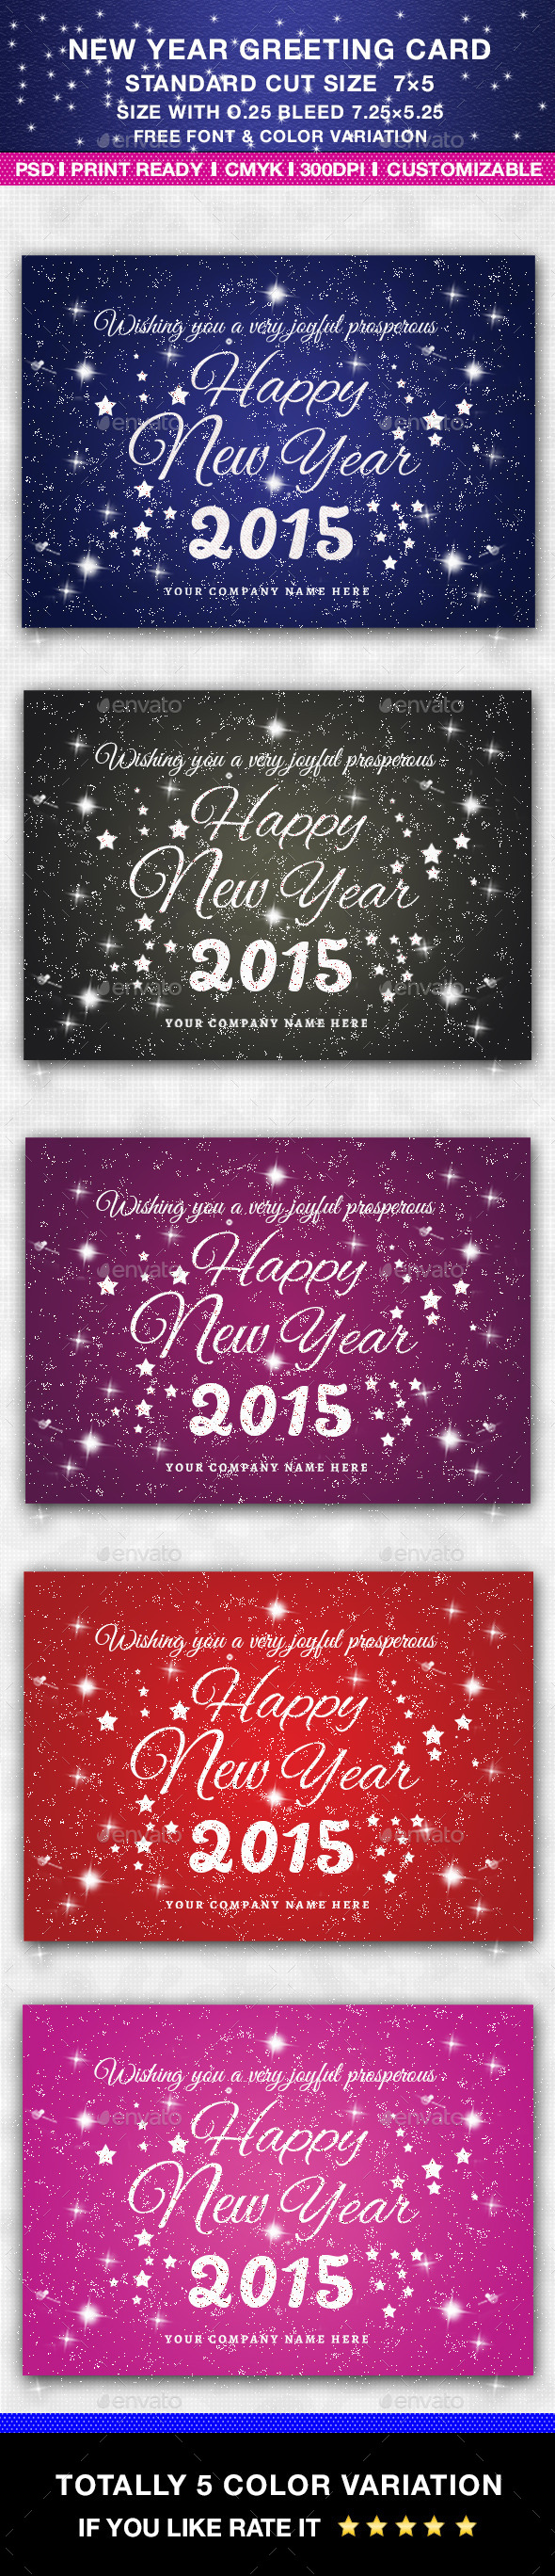 New Year Greeting Card - Greeting Cards Cards & Invites